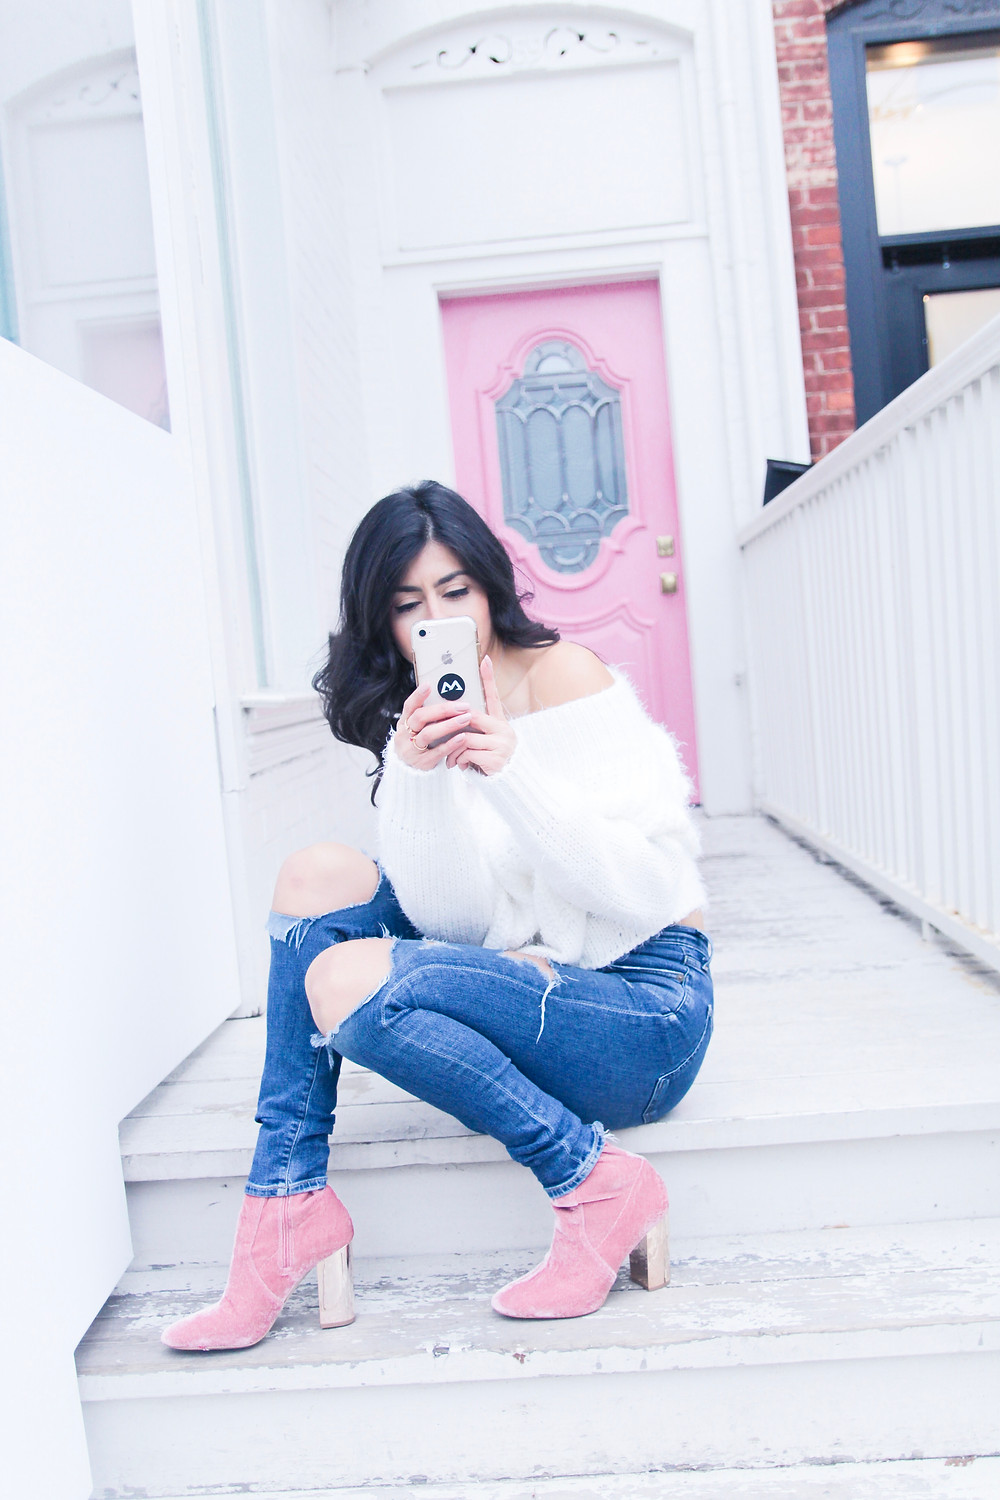 that single mom charlene lizette spanish female by a pink door wearing pink boots and blue jeans and white top on her phone